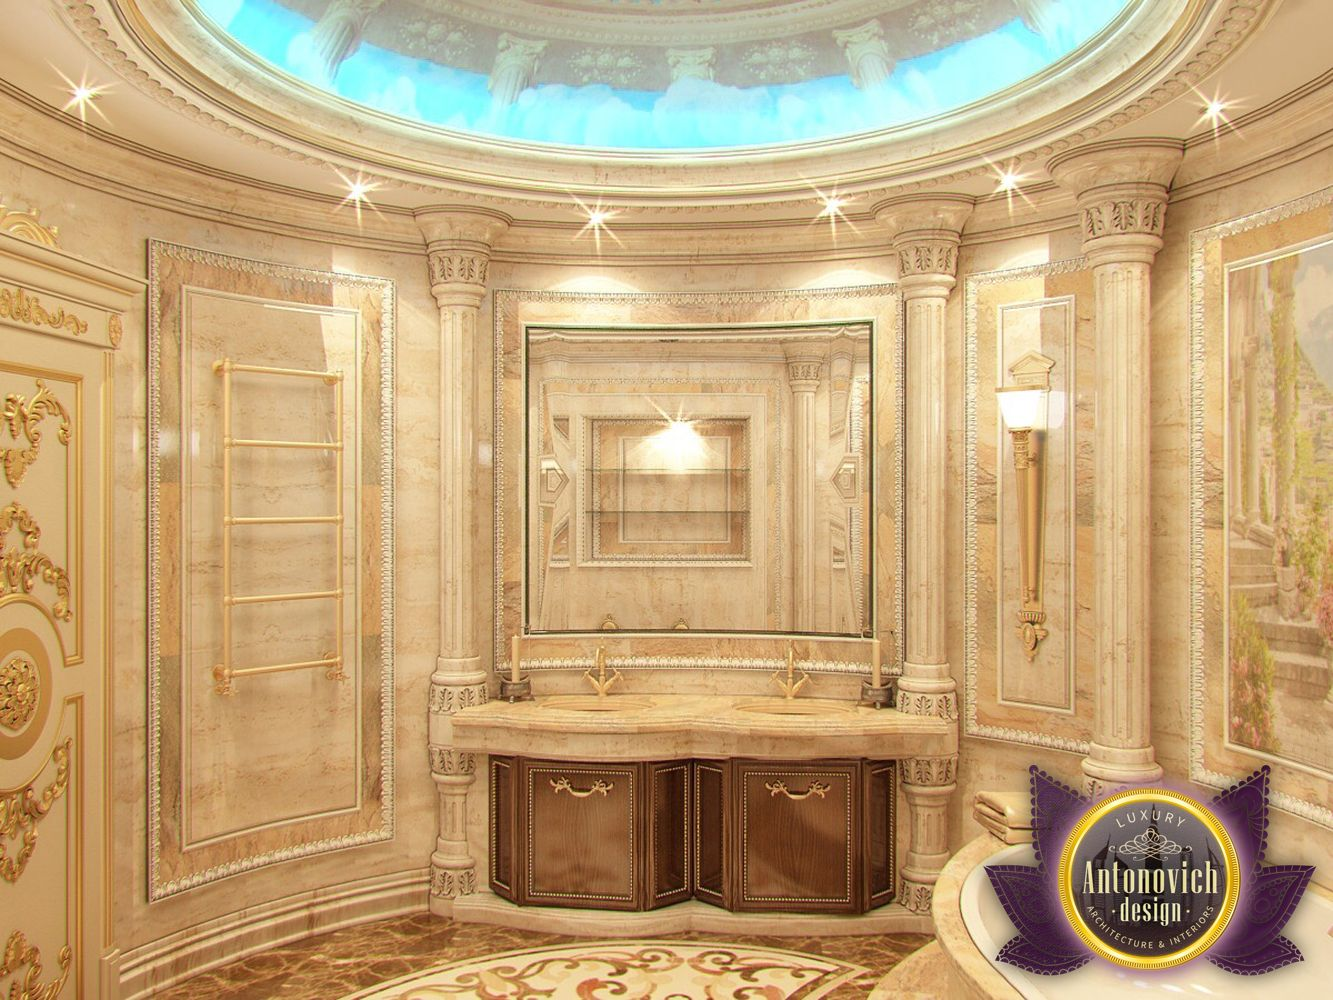 Nigeiradesign bathroom designs by luxury antonovich design for The bathroom designer